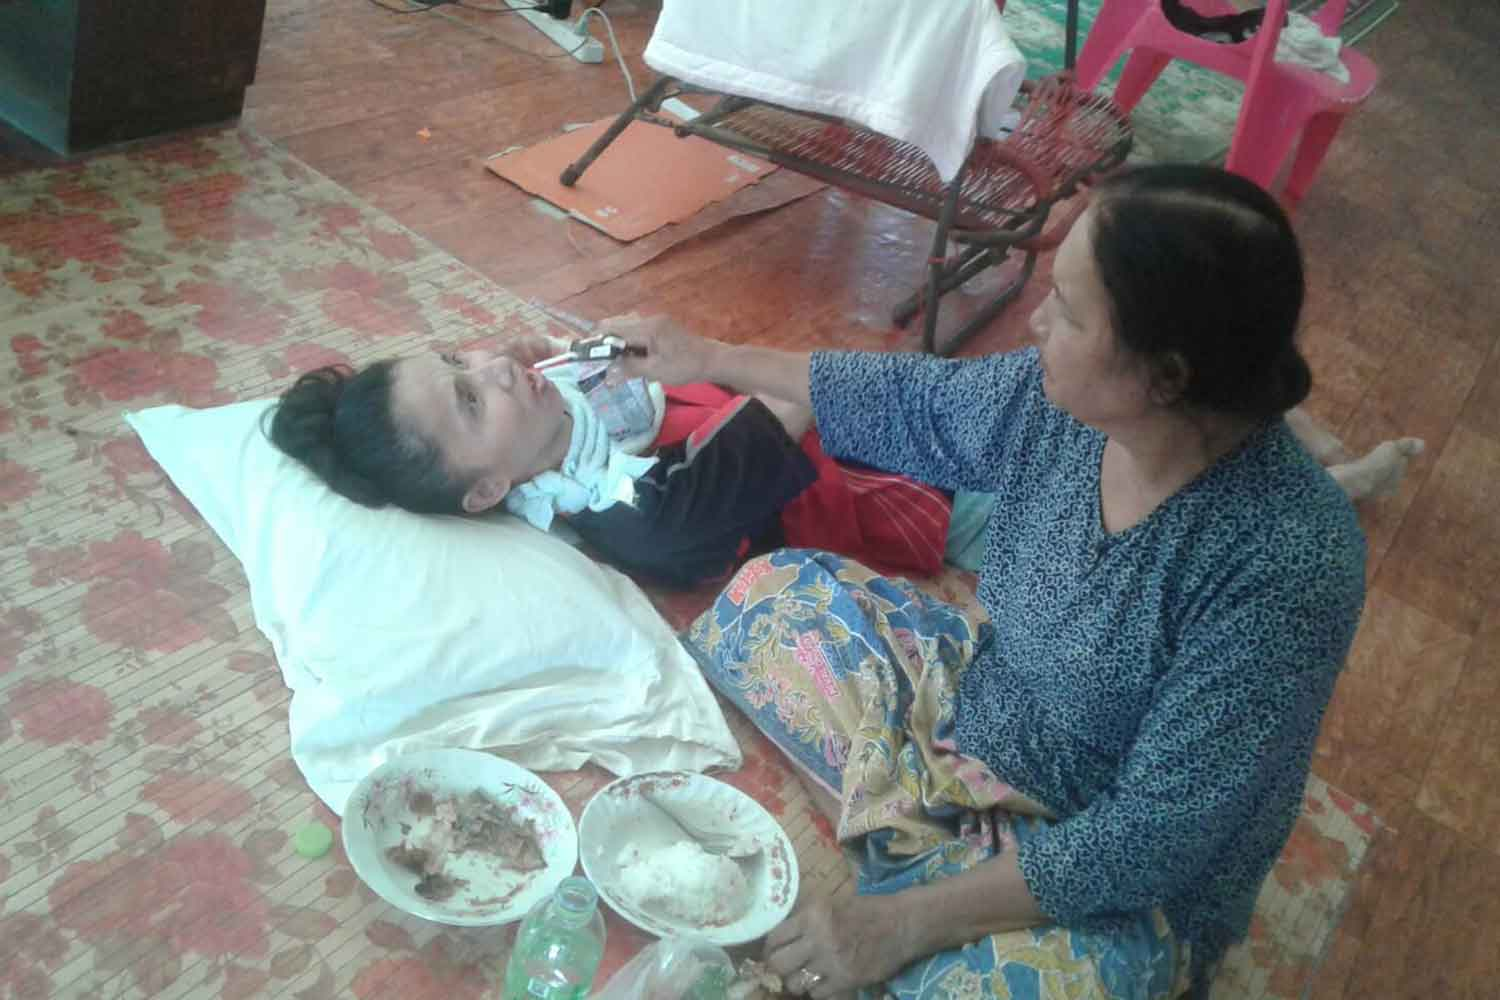 Koliyoh Sriyaphai (right), 63, has been taking care of her daughter Wanna, now 37, for 17 years at their home in Muang district, Nakhon Si Thammarat, after she had been set ablaze by an estranged boyfriend who was arrested on Wednesday for the alleged crime. (Crime Suppression Division photo)